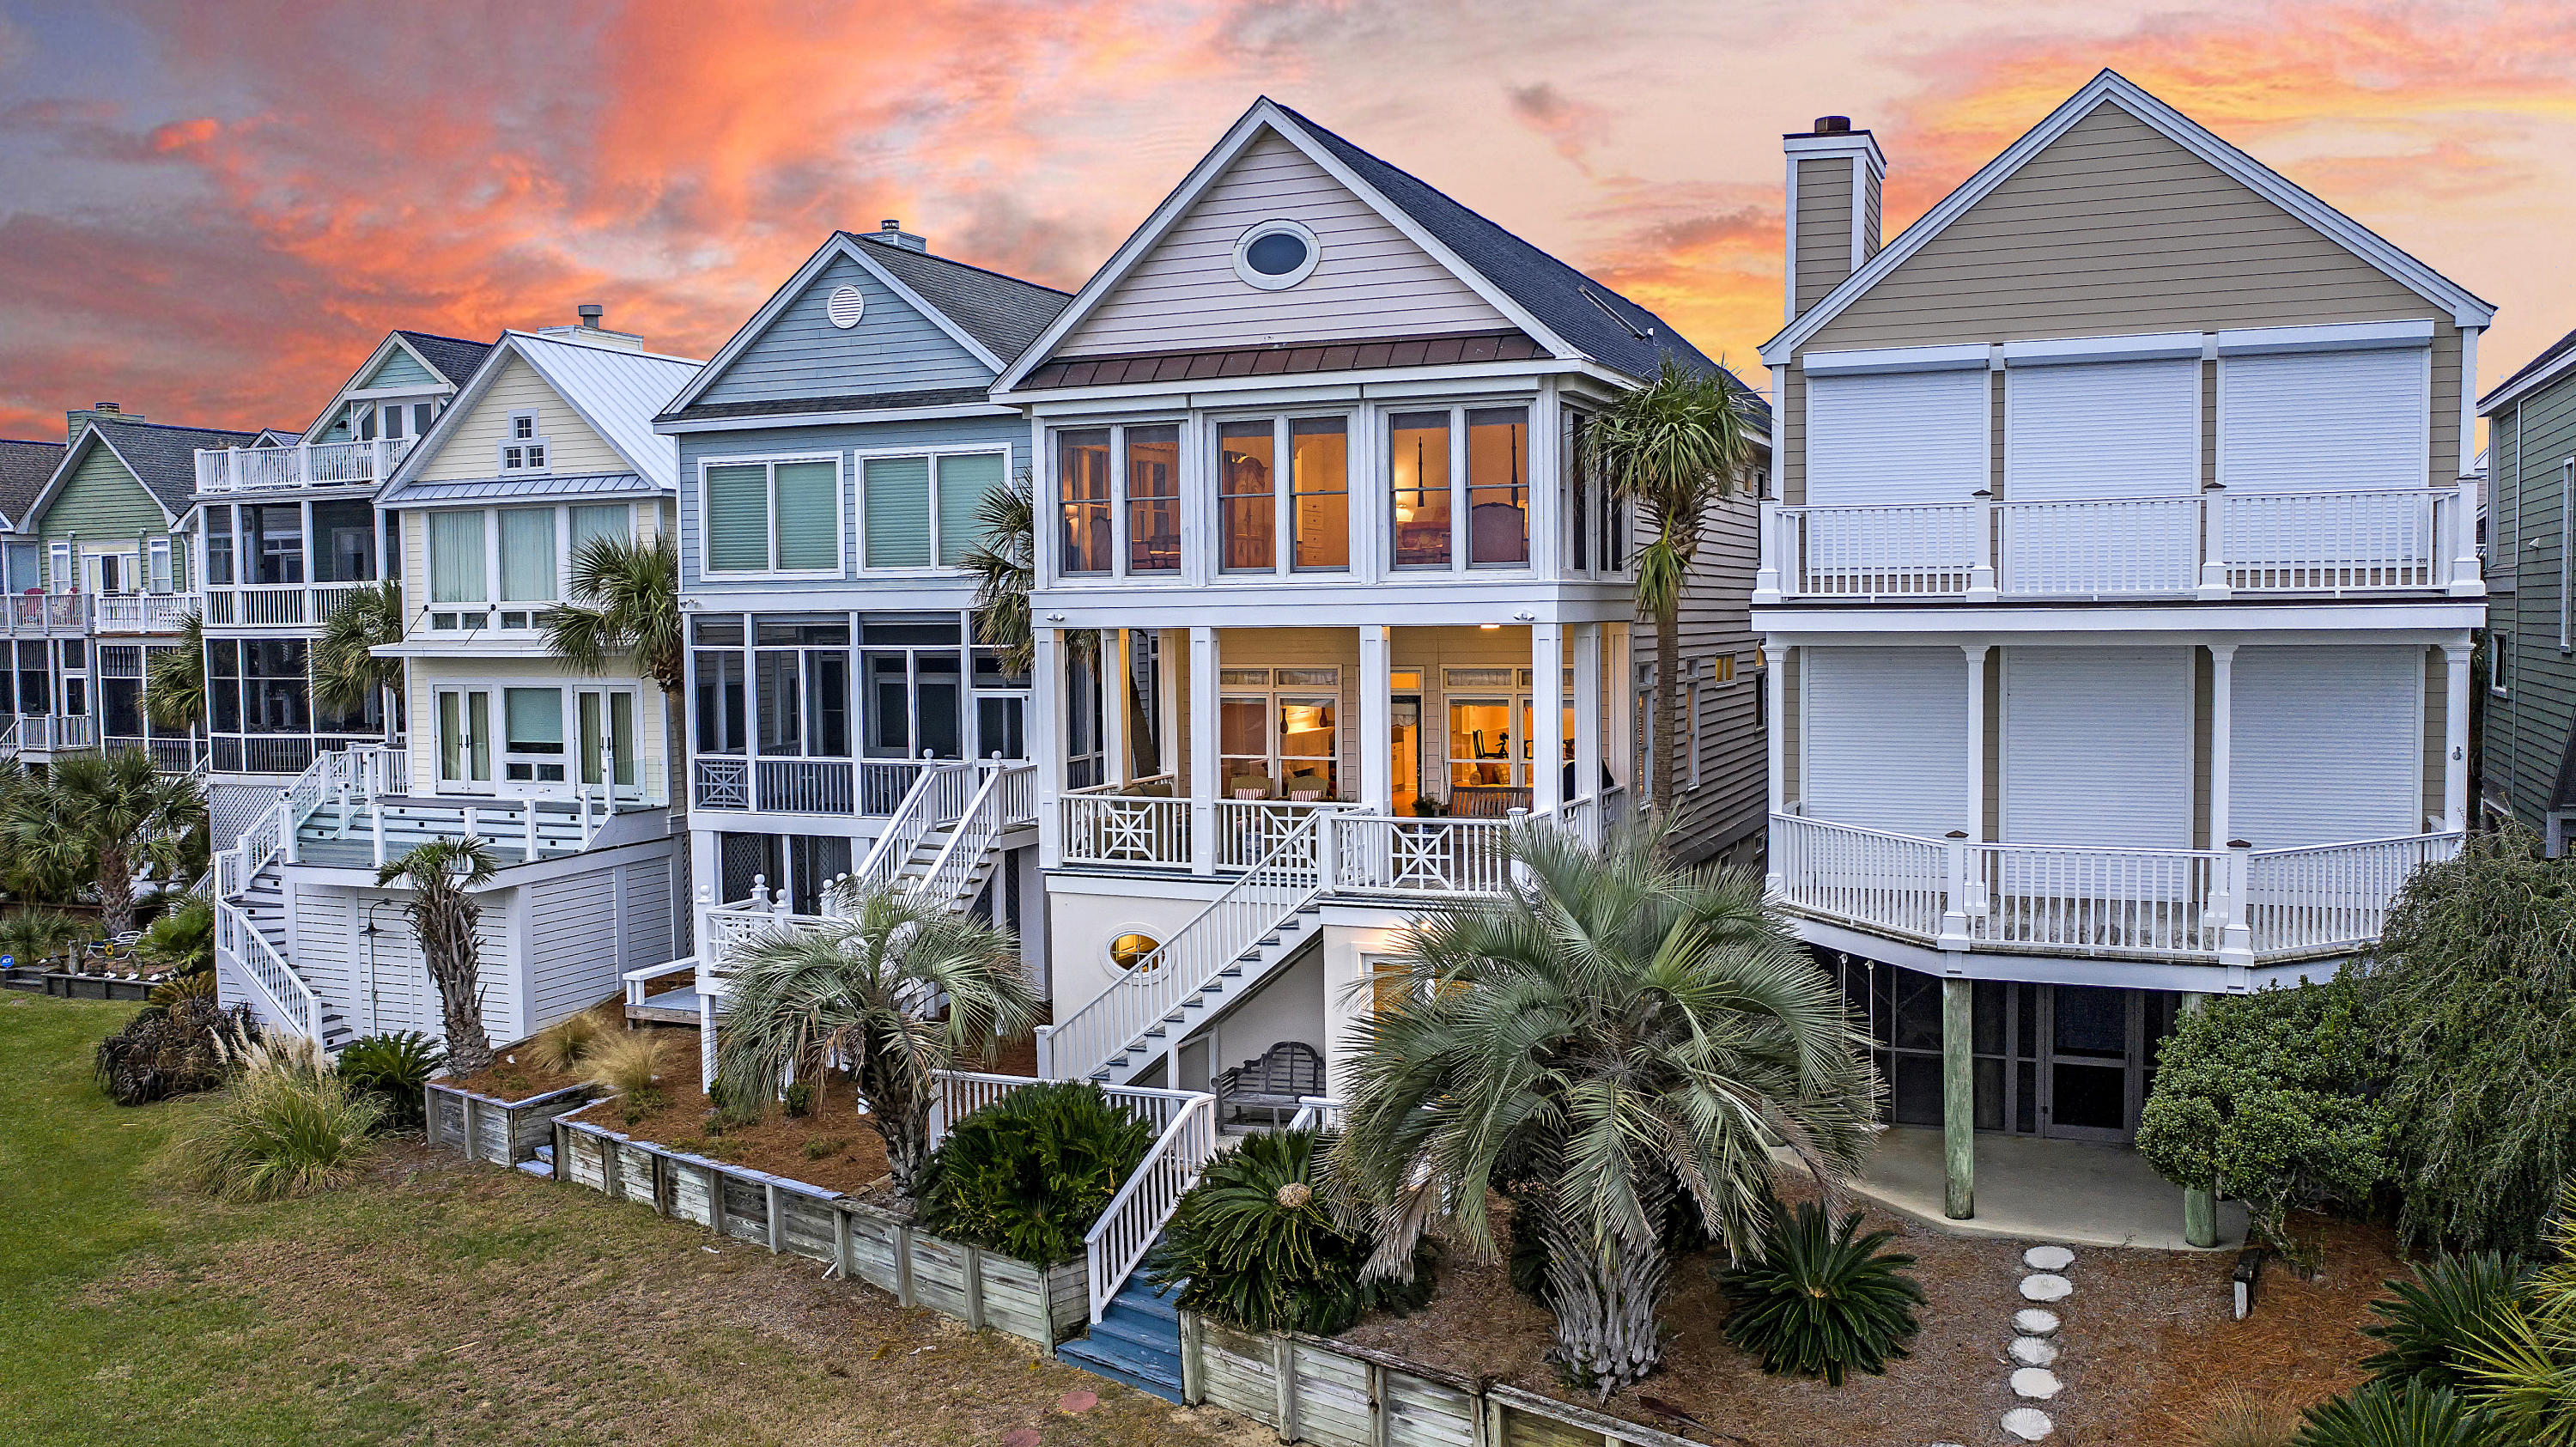 Wild Dunes Homes For Sale - 37 Ocean Point, Isle of Palms, SC - 0